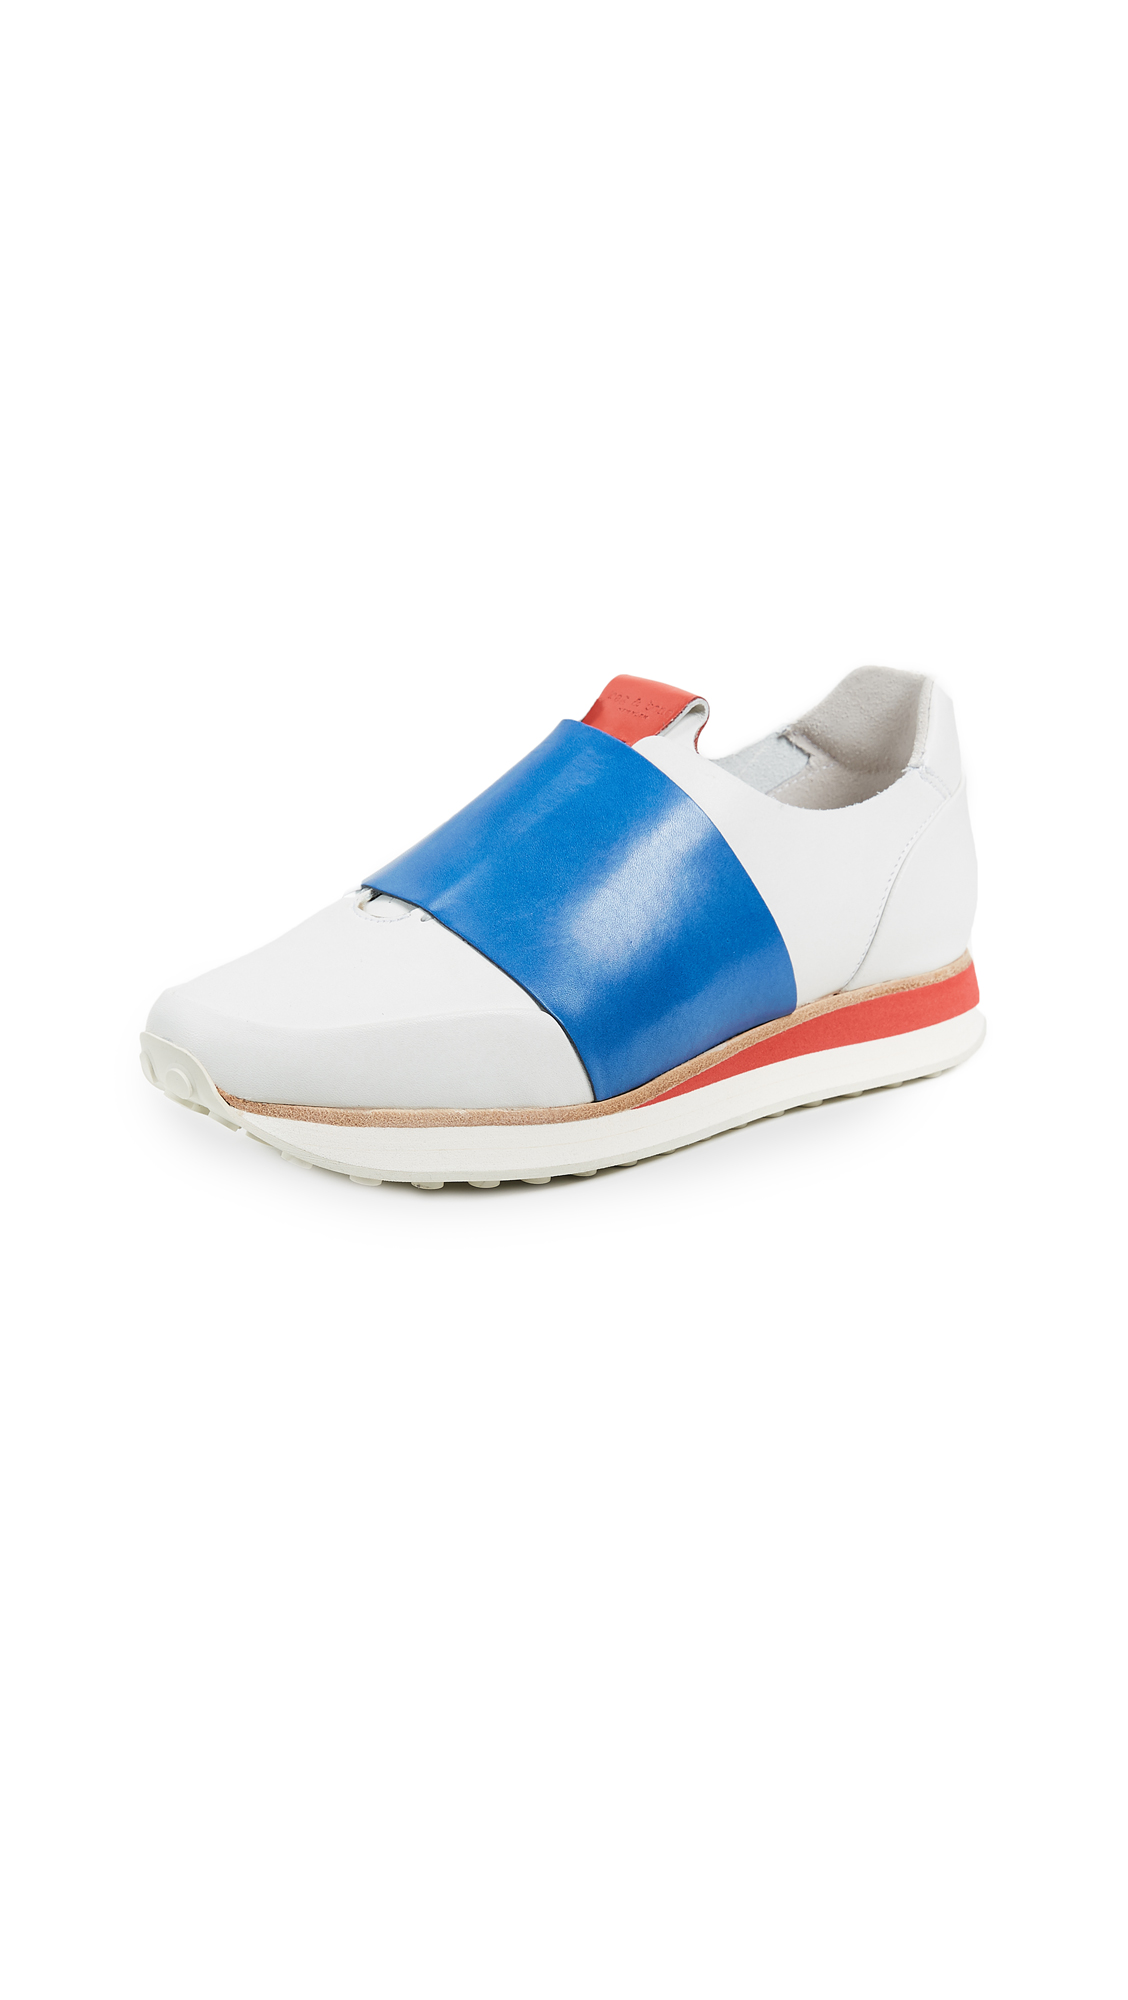 Rag & Bone Dylan Elastic Runners - White/Blue